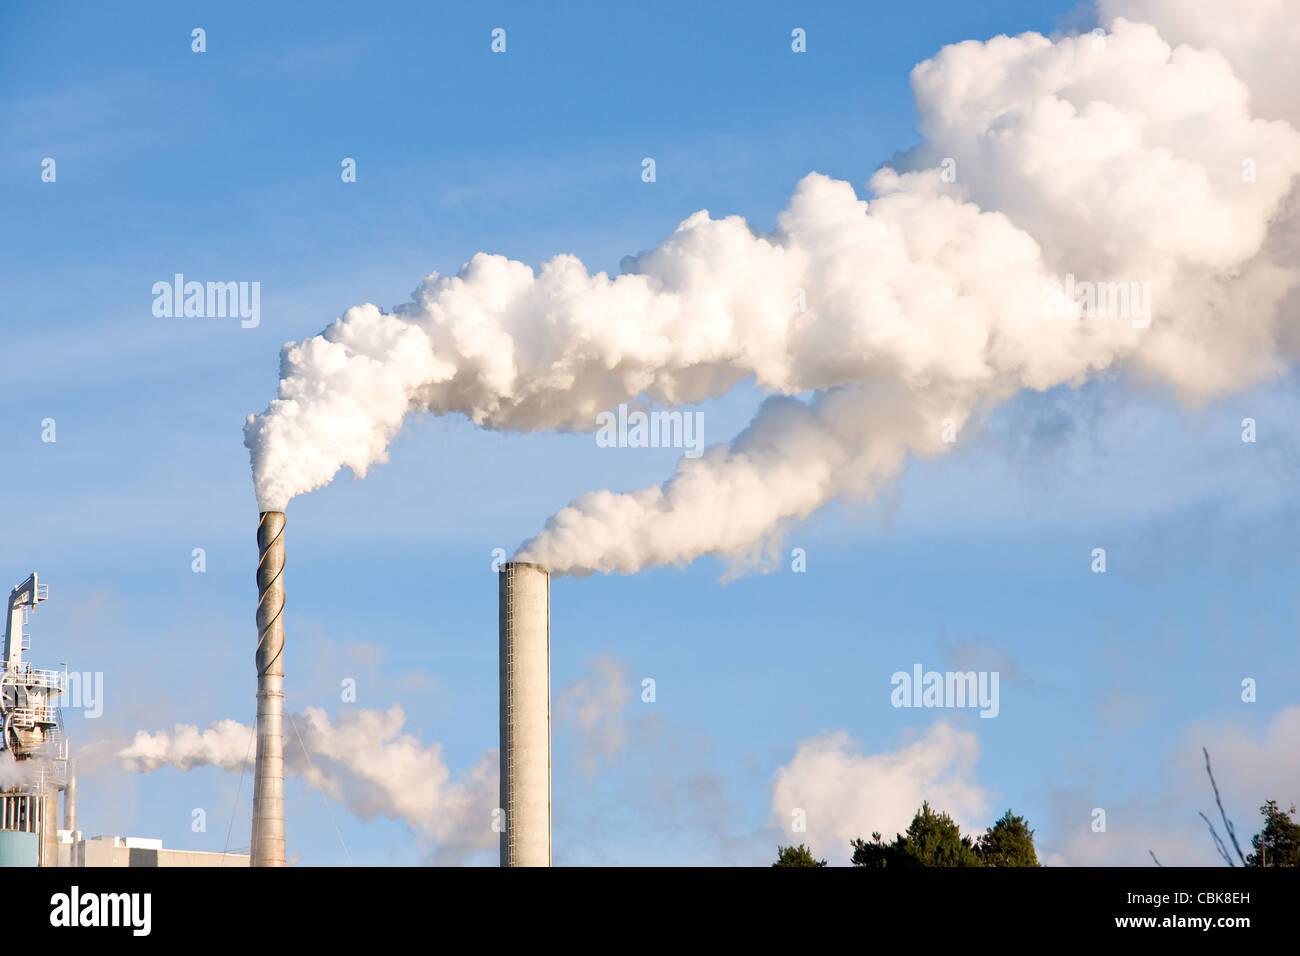 Chimney pollution - Stock Image